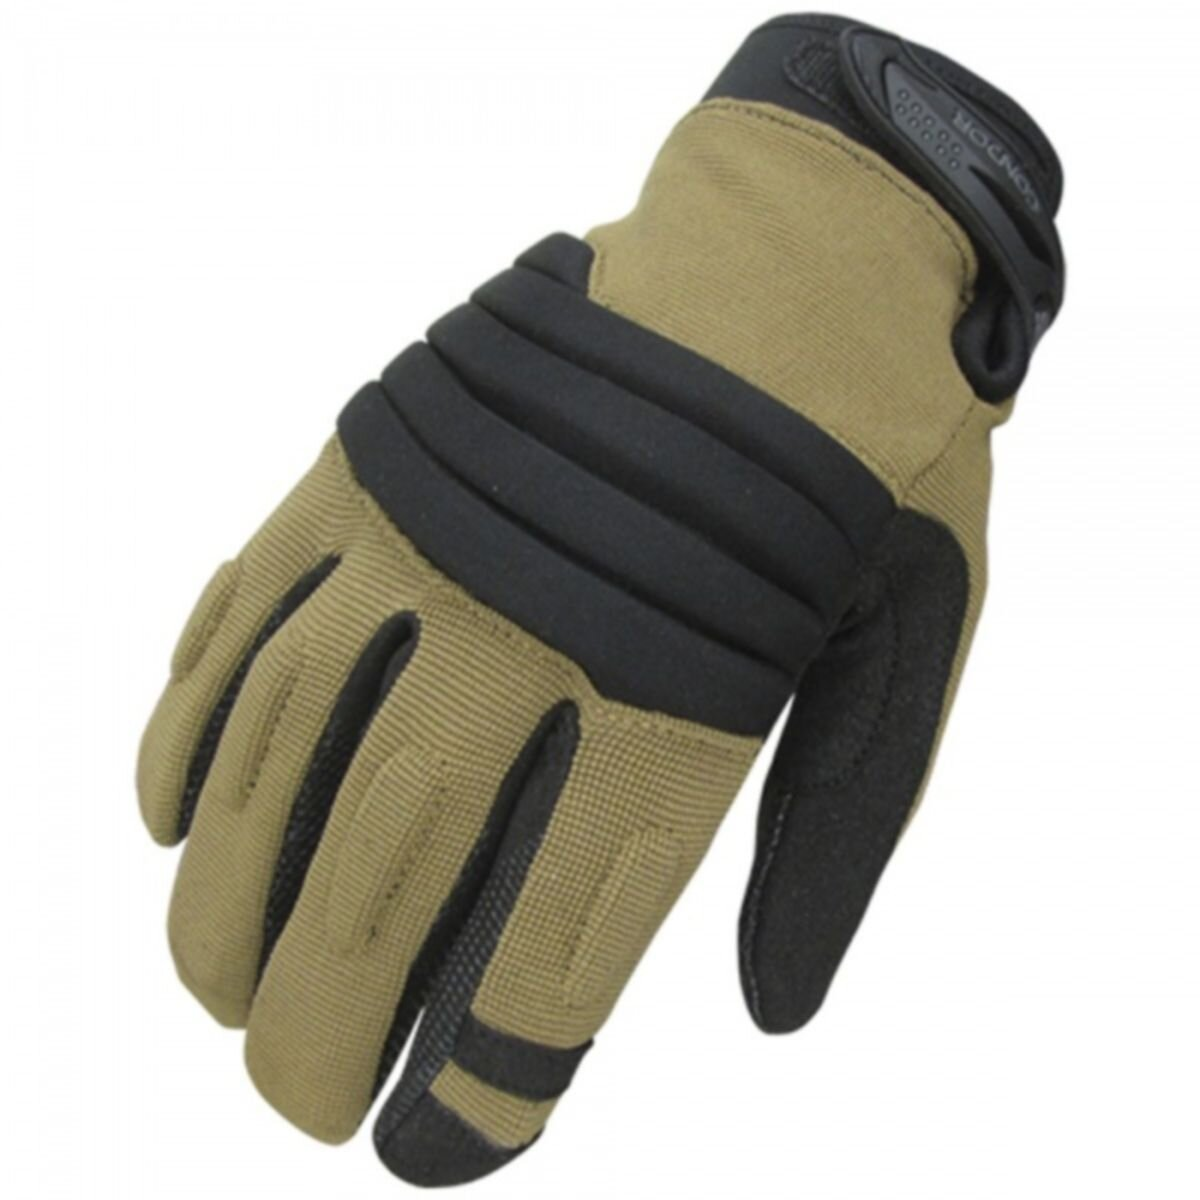 Перчатки Condor STRYKER Padded Knuckle Gloves Tan M Бежевый (226-003-M)